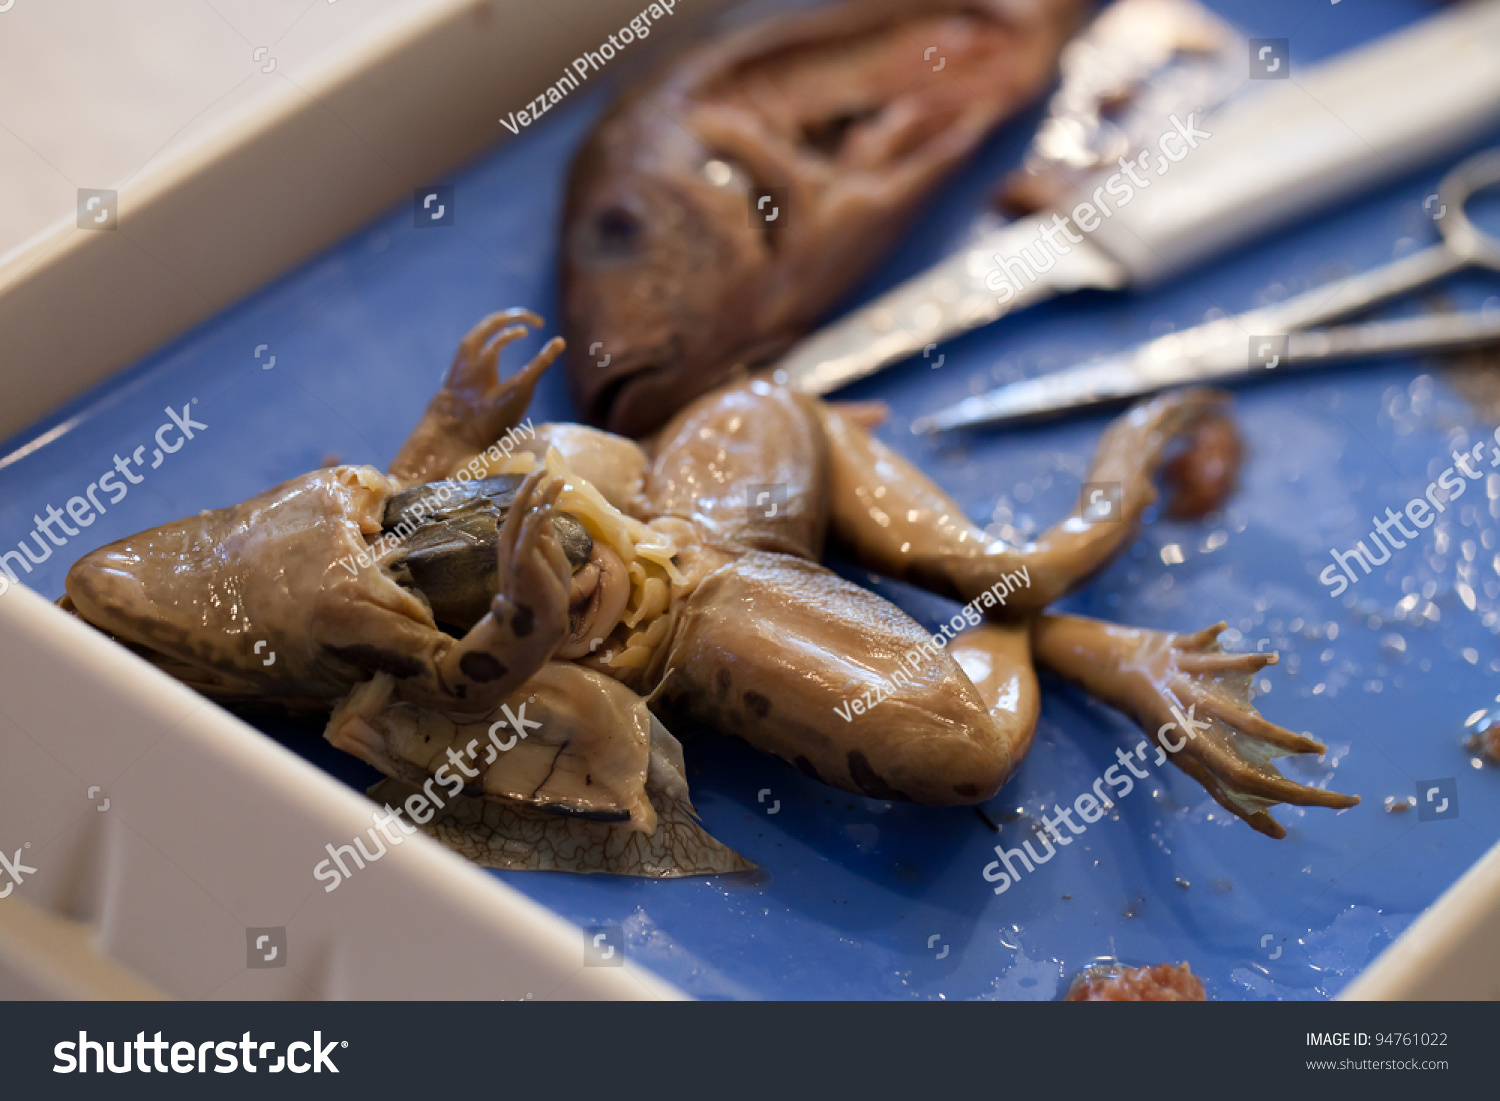 Closeup Frog Fish Comparative Anatomy Dissection Stock Photo ...